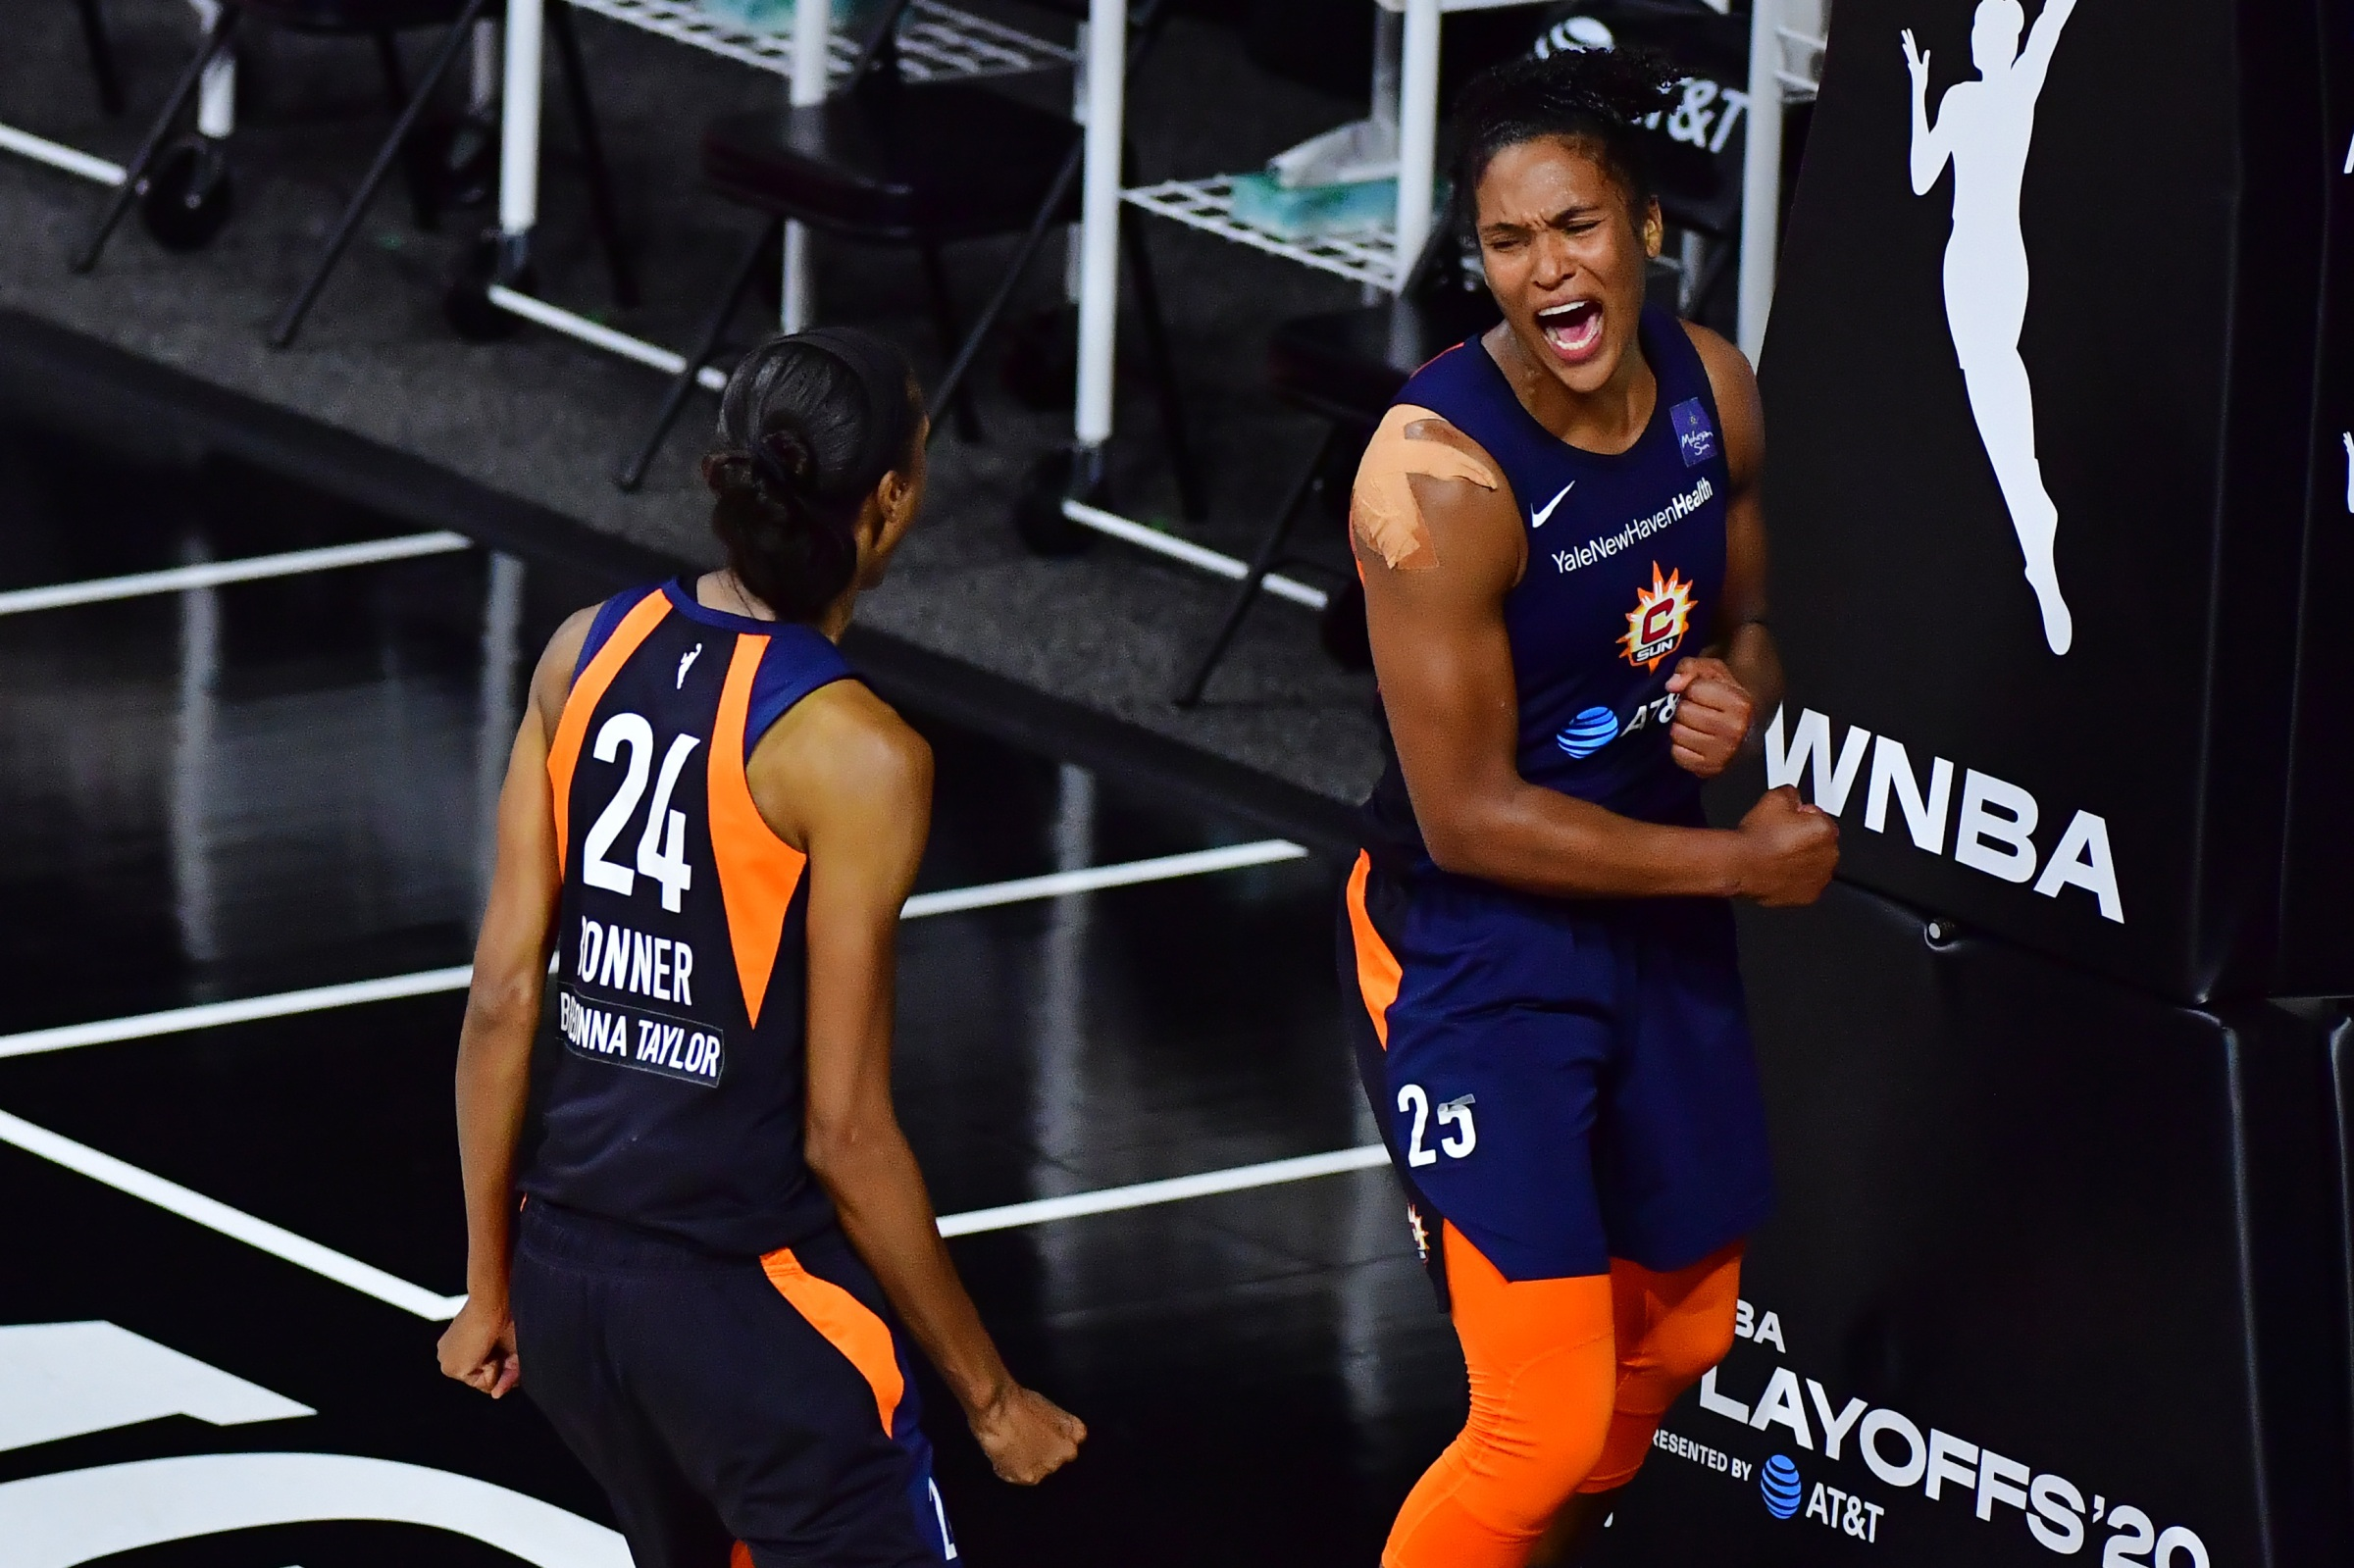 Alyssa Thomas #25 of the Connecticut Sun celebrates with DeWanna Bonner #24 after converting a steal in the fourth quarter against the Las Vegas Aces during Game Three of their Third Round playoff at Feld Entertainment Center on September 24, 2020 in Palmetto, Florida.